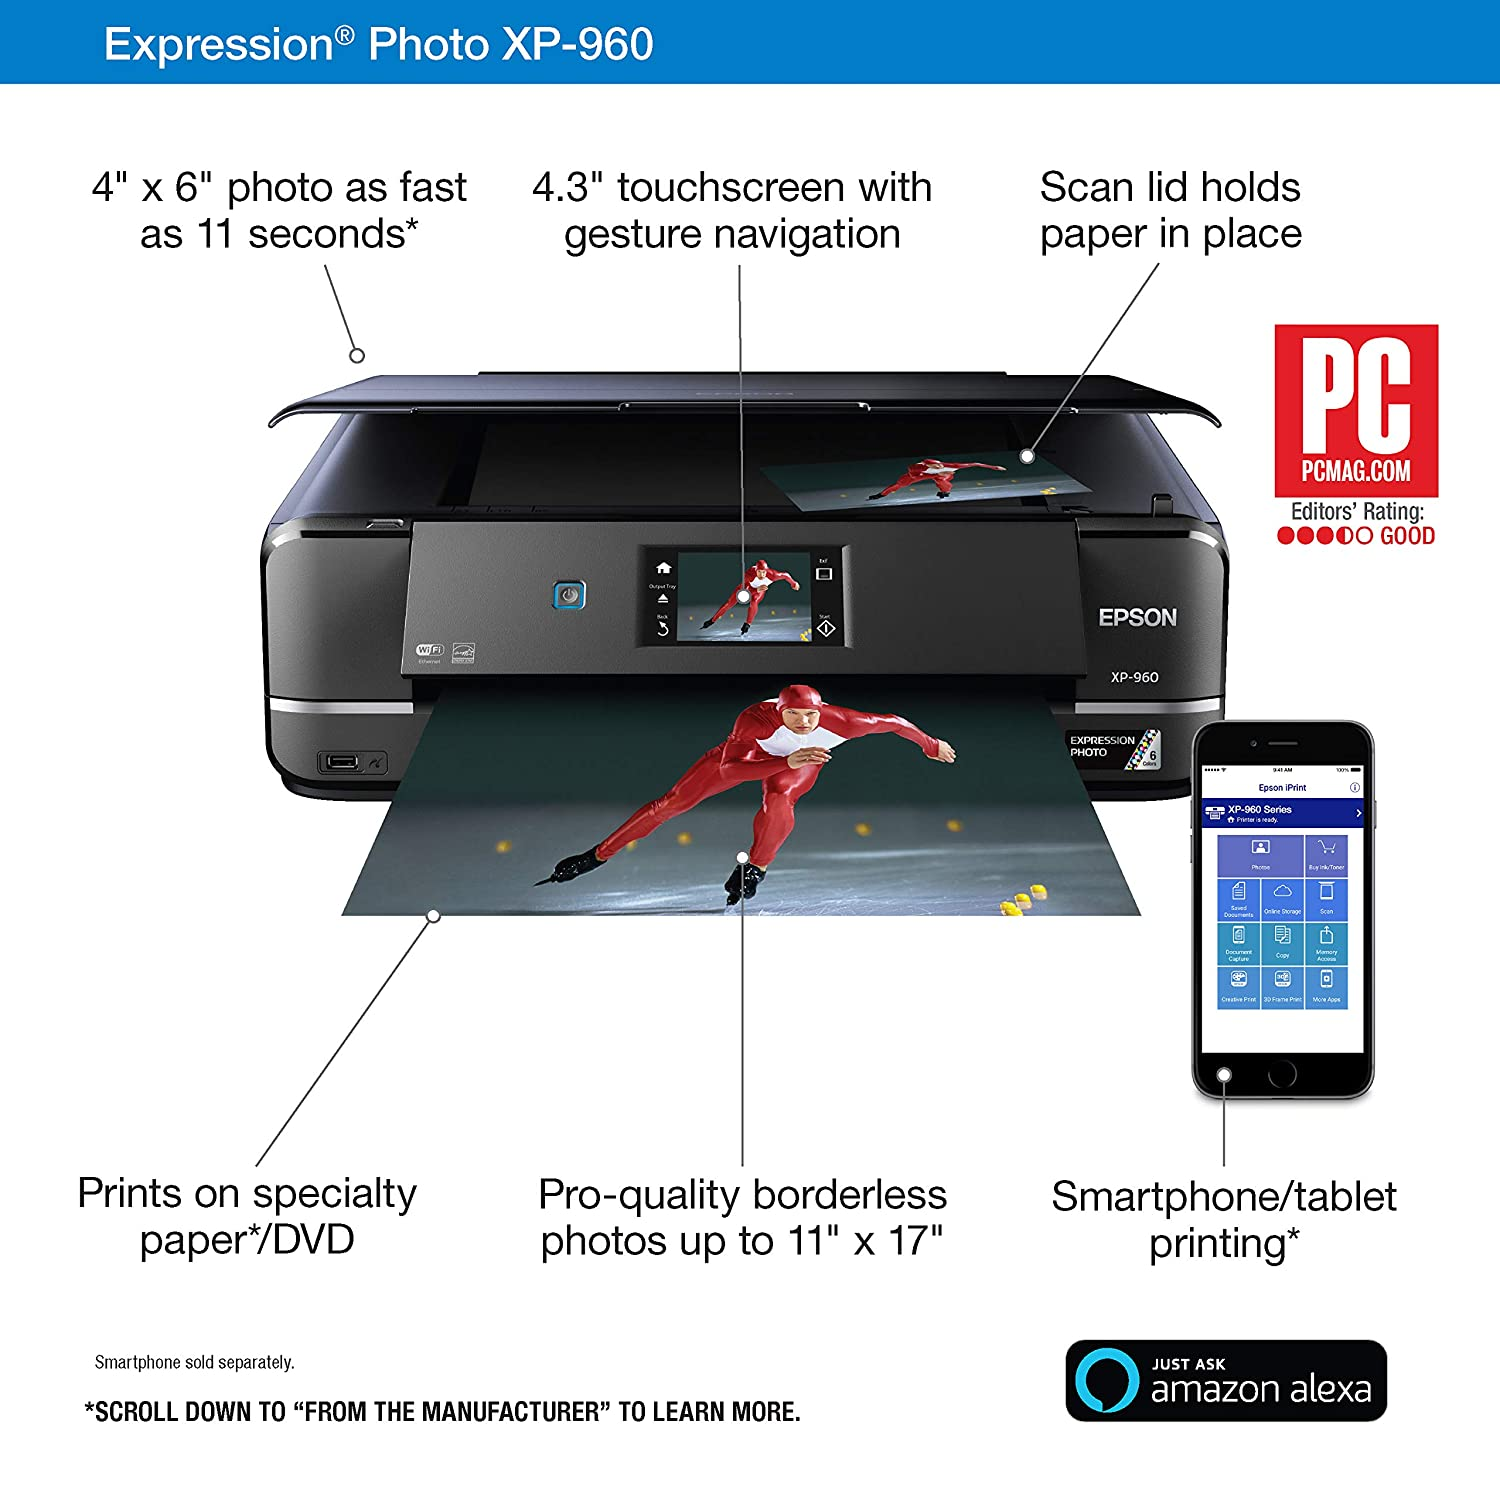 Amazon.com: Epson Expression Photo XP-960 Impresora ...